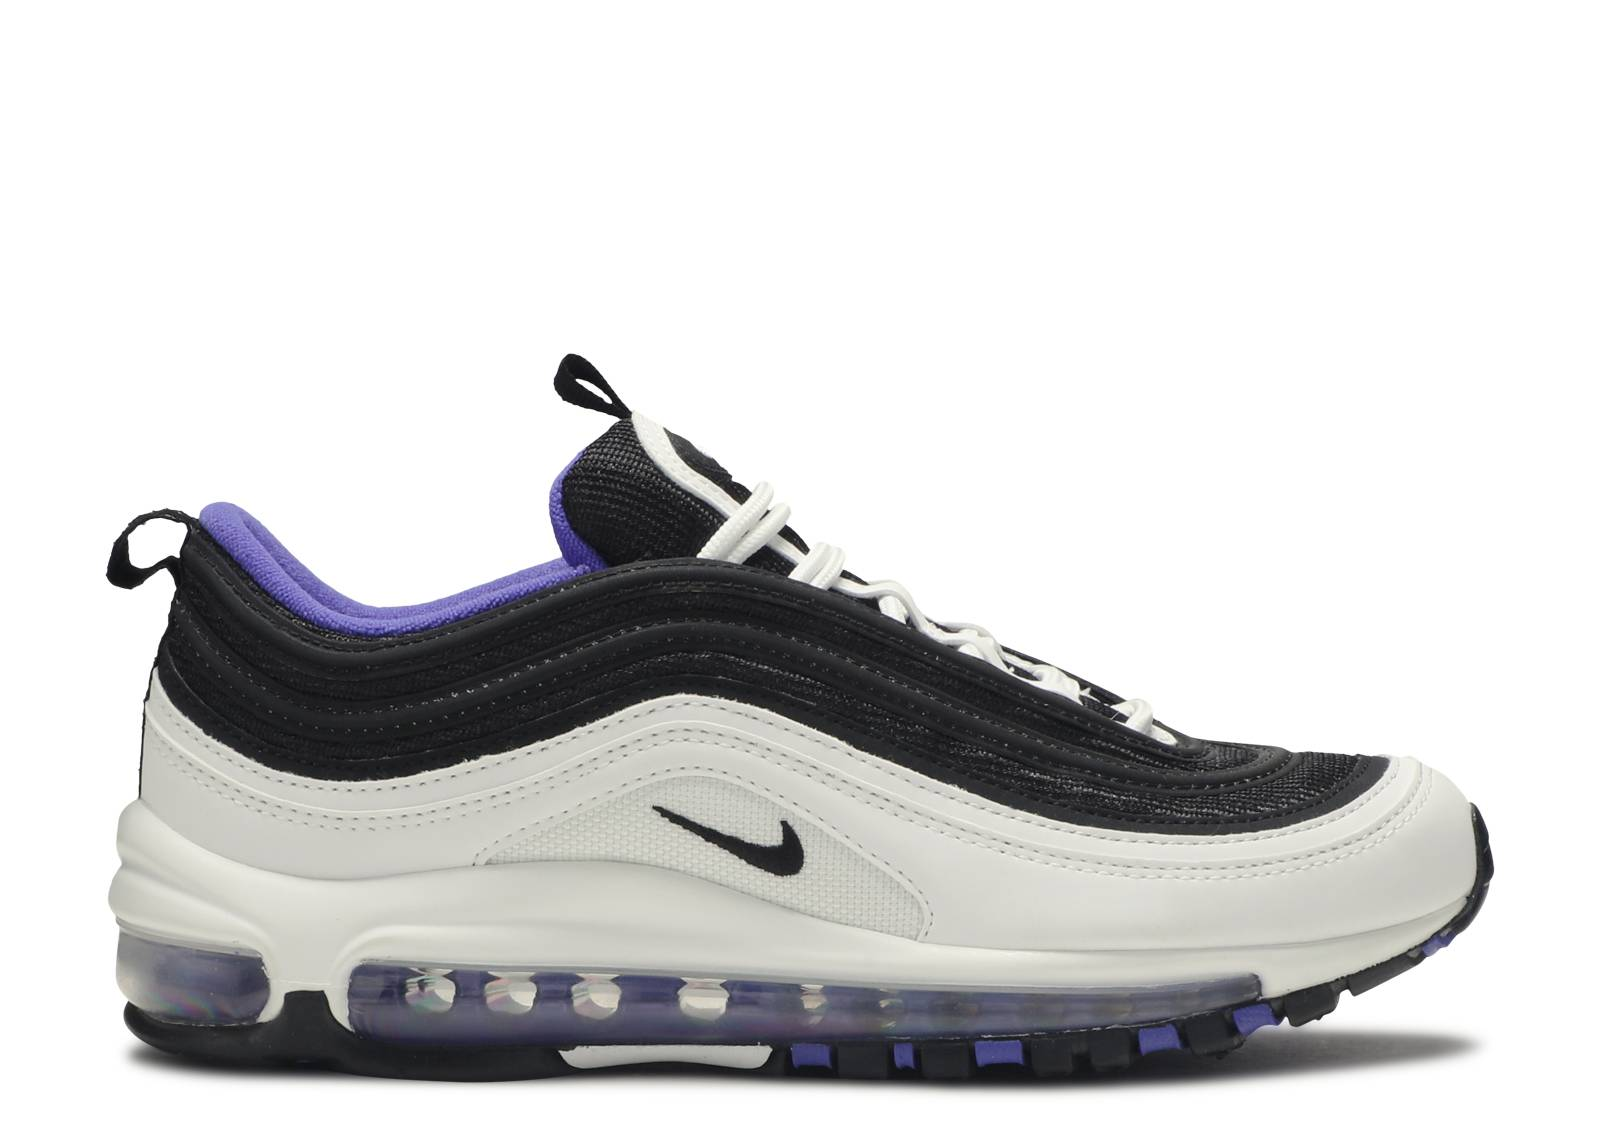 c05205eb58 Nike Air Max 97 Gs - Nike - 921522 102 - white/black-persian violet ...